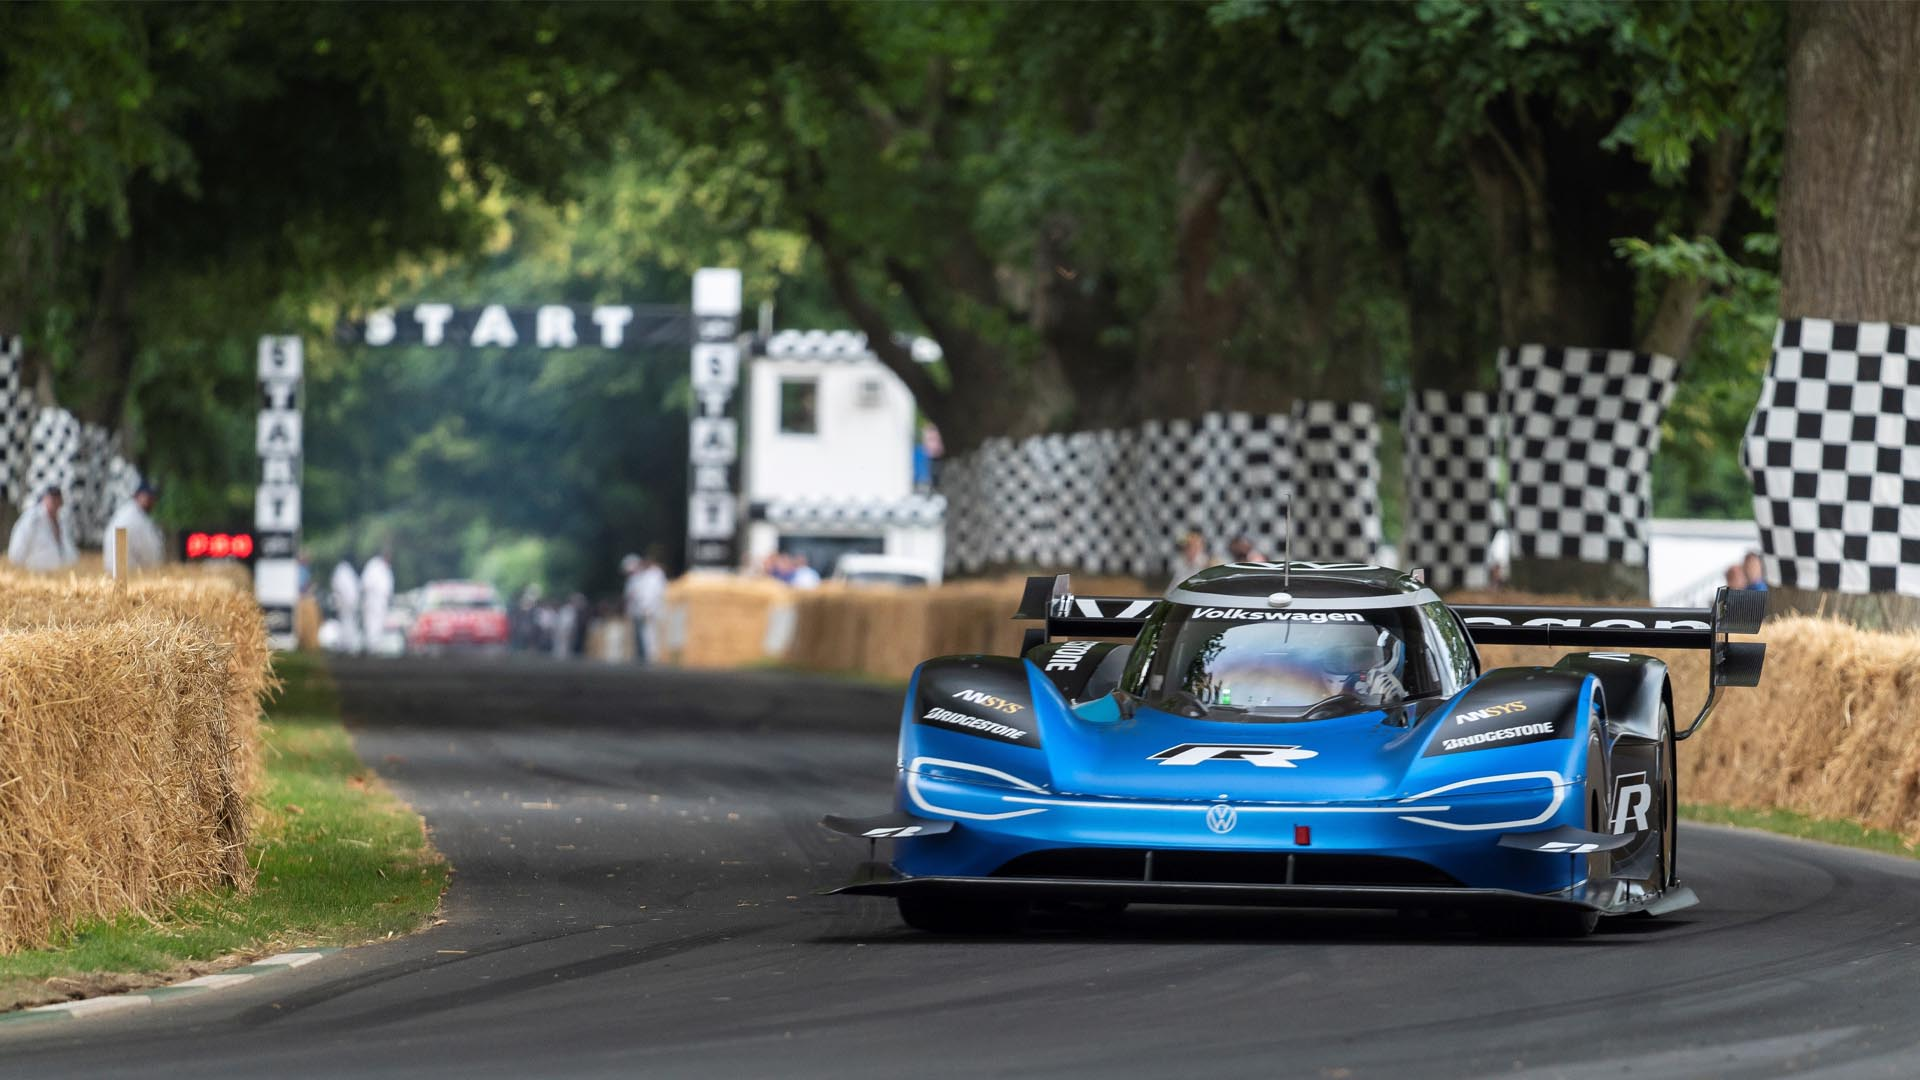 Faster Than Fossil Fuels: The Volkswagen ID.R Sets The Overall Record At The Goodwood Festival Of Speed